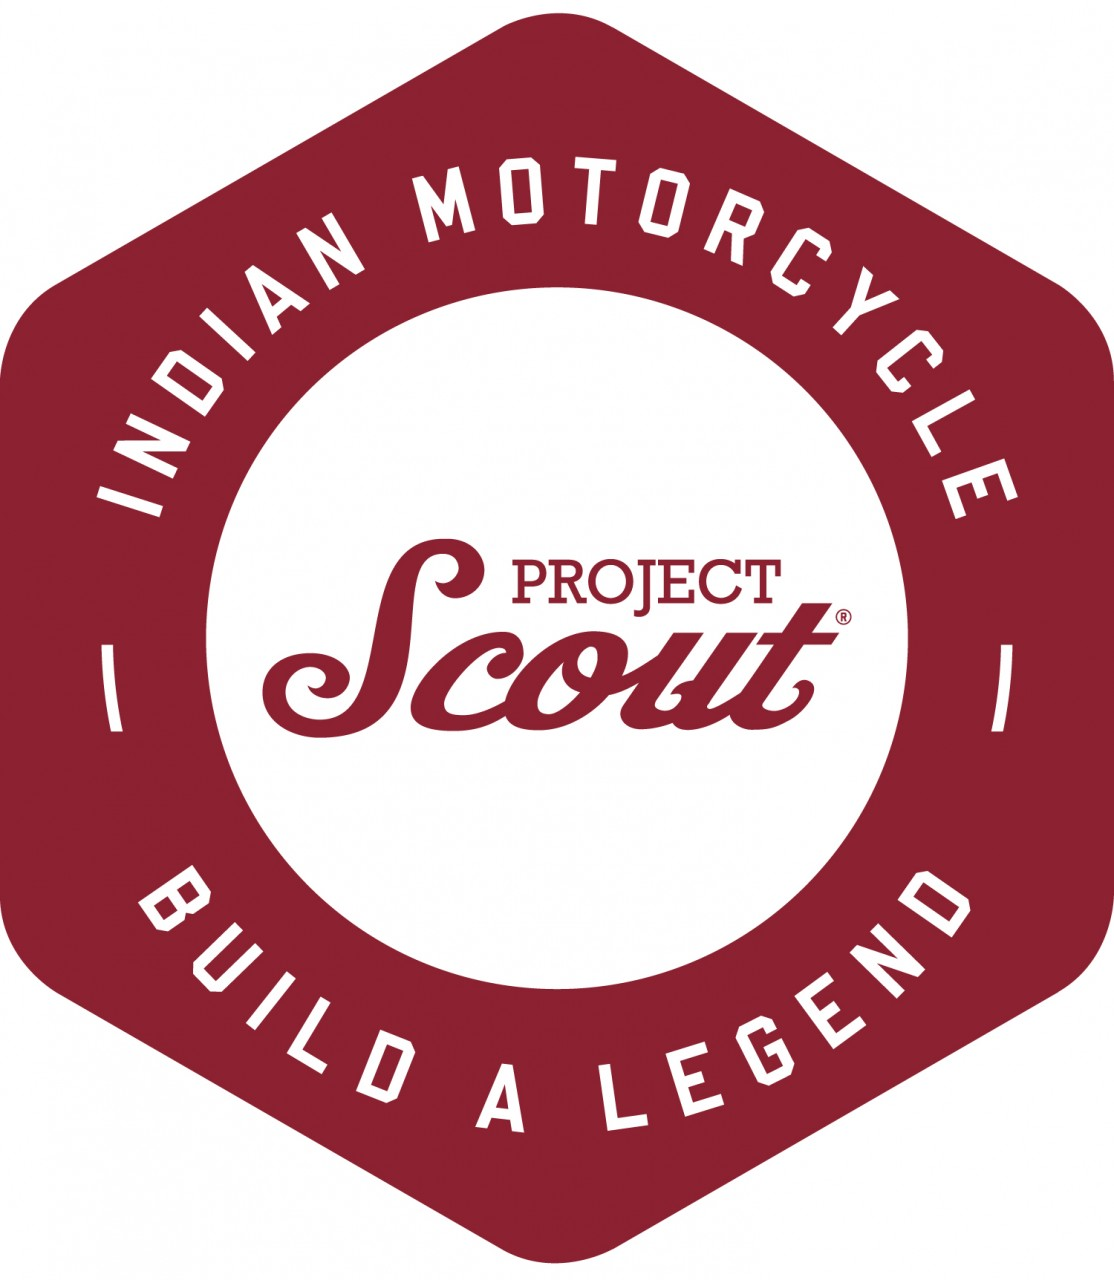 Indian Scout R  Usa Ricochet together with Black Sticker For Dji Phantom 2 Vision also Up ing Indian Scout Bobber Looks Mean To The Core additionally Lct Ak 104 Front End also Vought SB2U Vindicator. on scout 2 parts